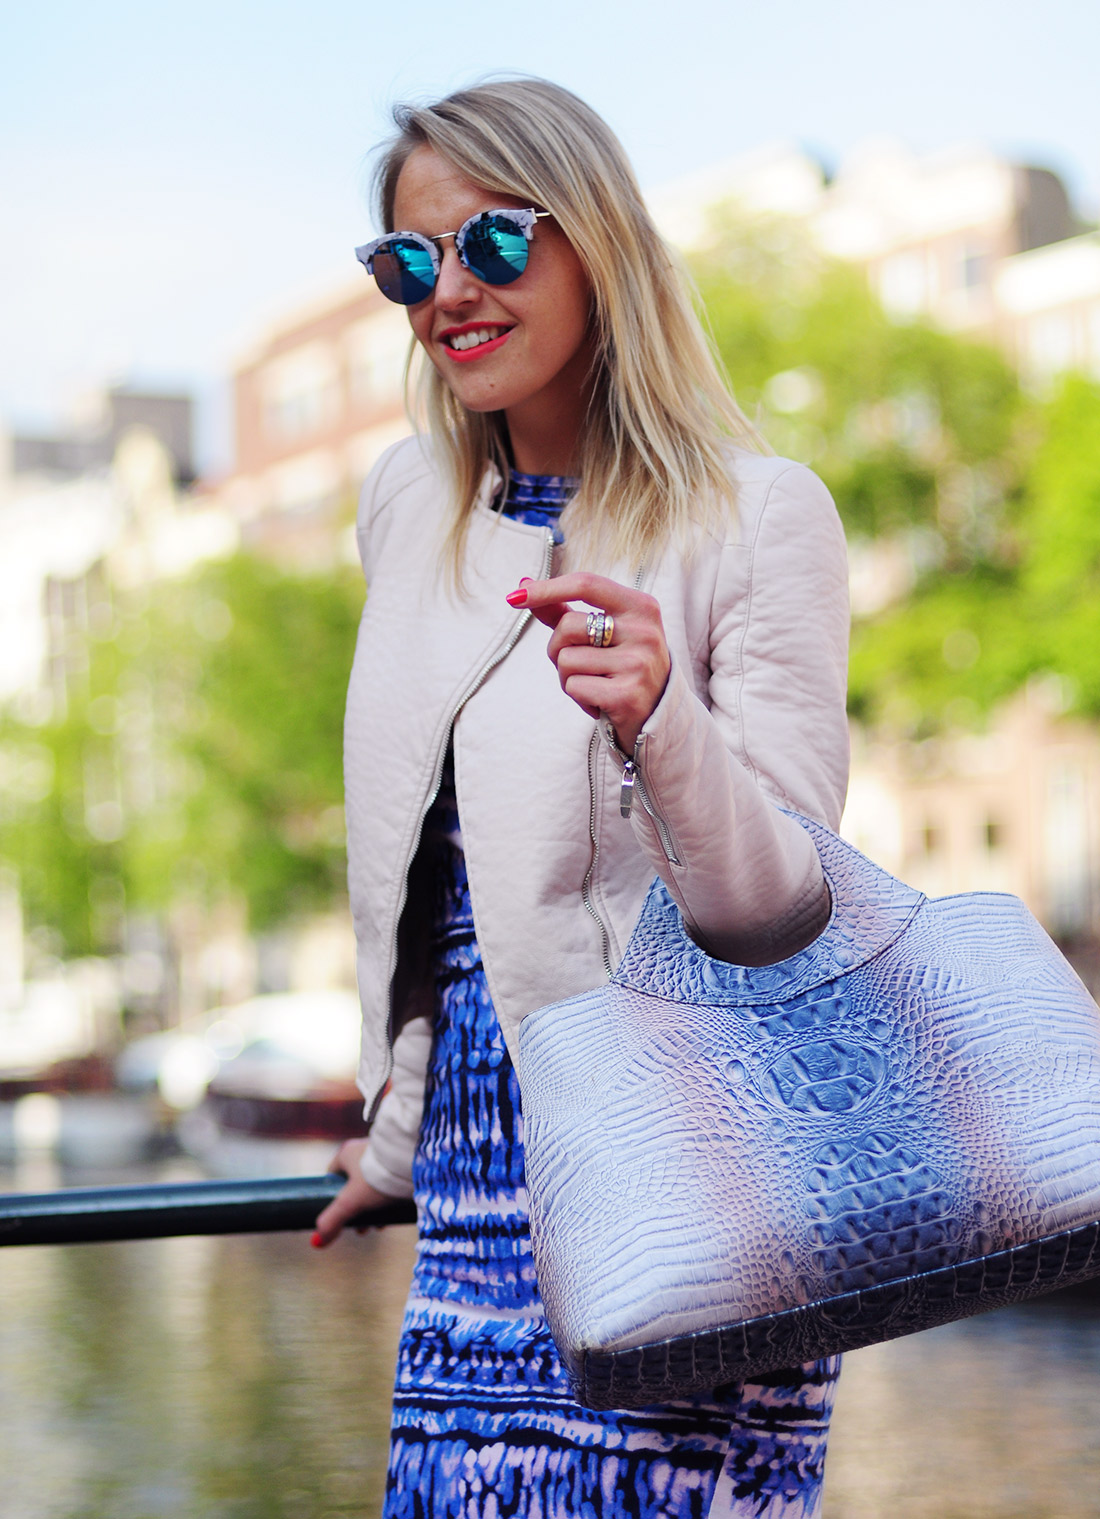 Bag-at-You---Fashion-blog---Smile-with-Polette-sunglasses---Streetstyle-Amsterdam